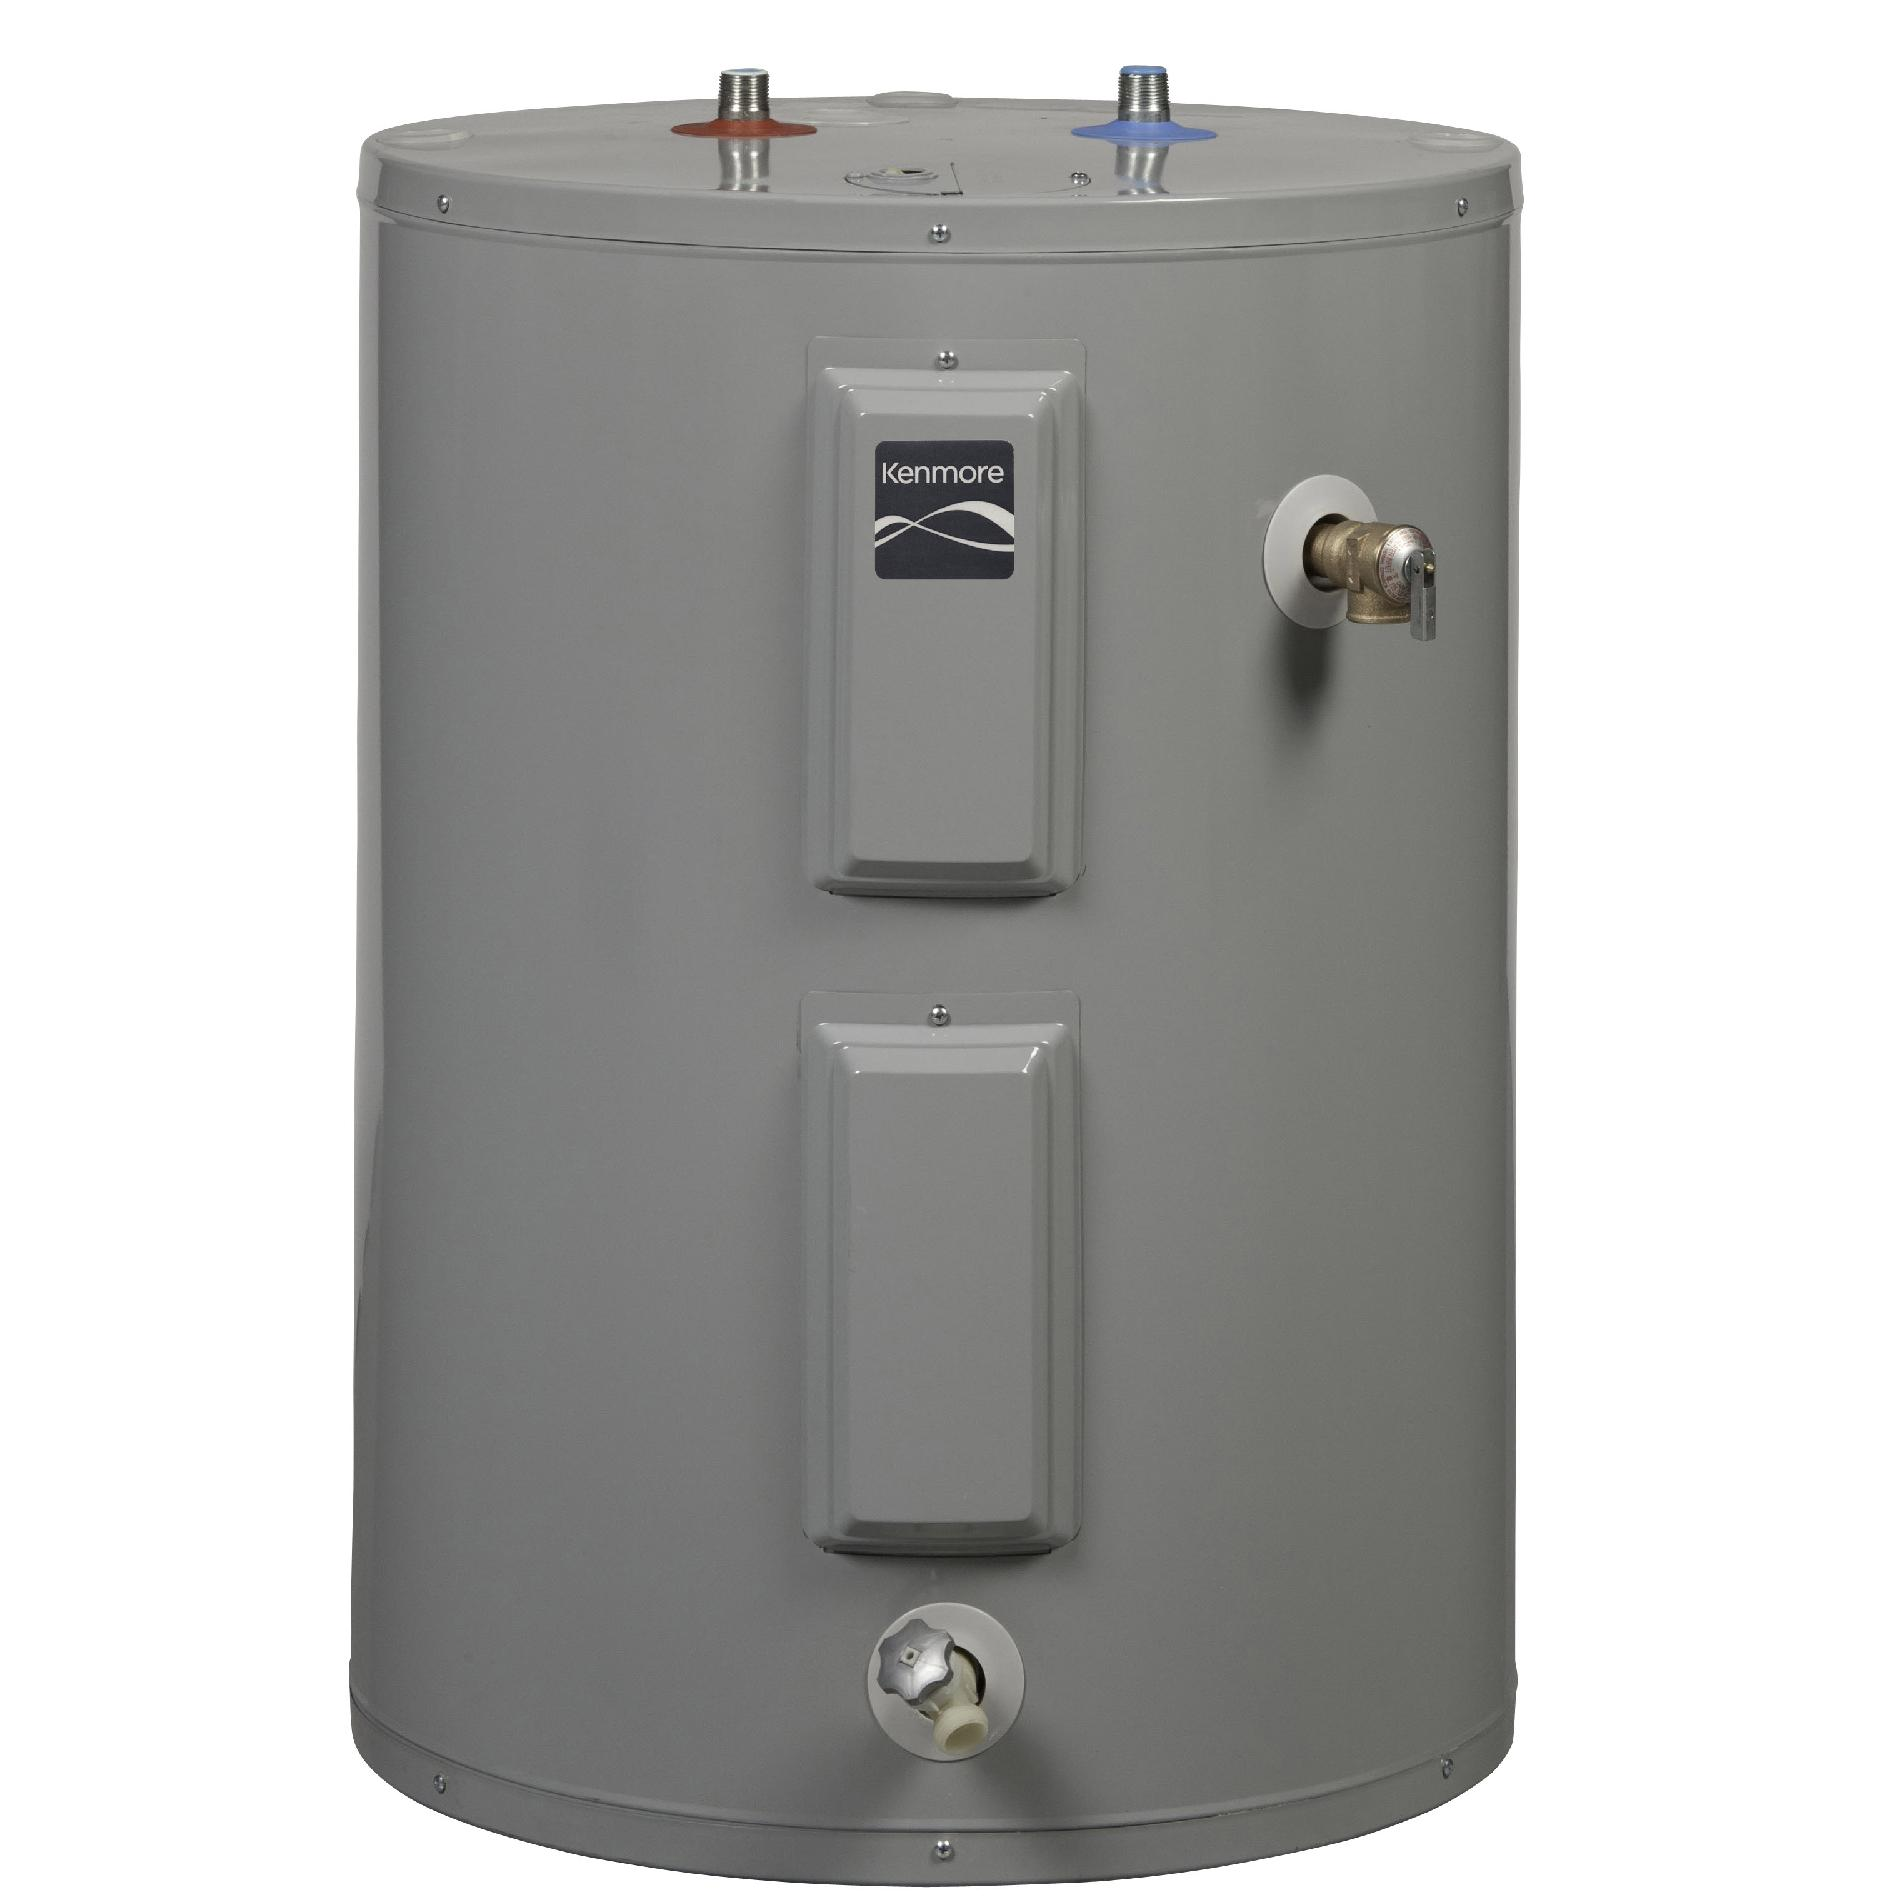 Kenmore 38 gal. Short 6-Year Electric Water Heater